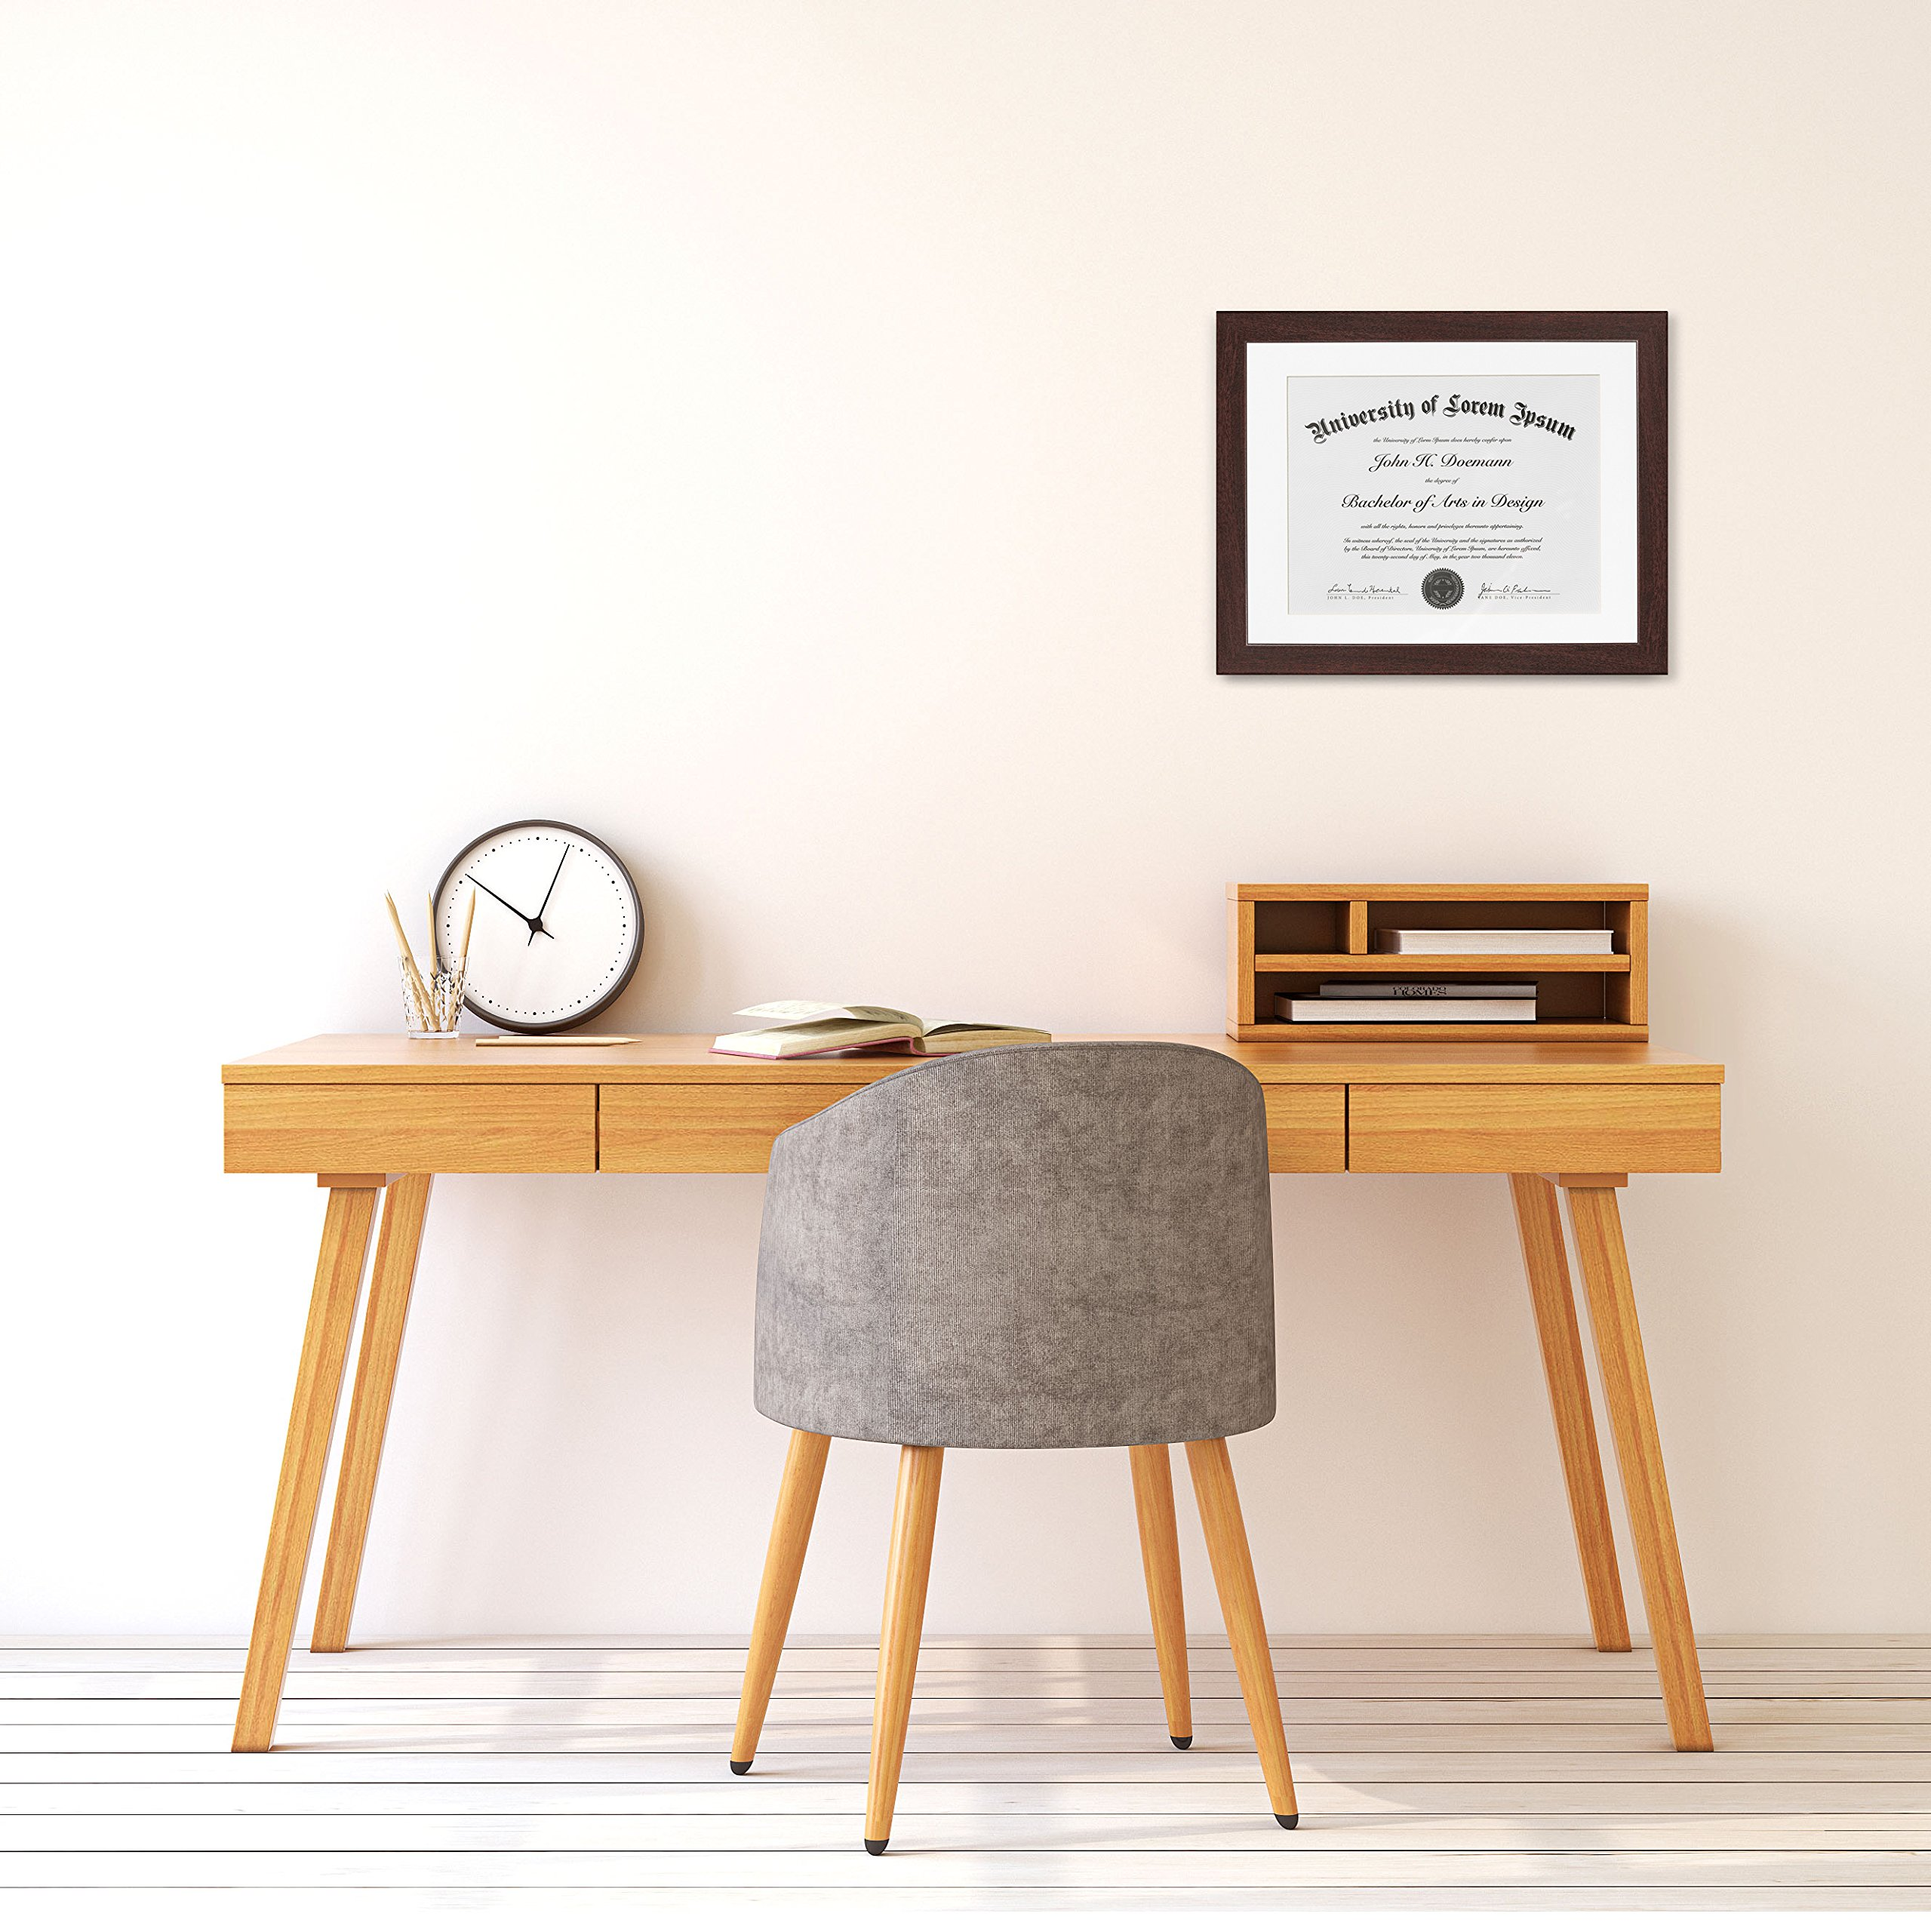 Mahogany Document Frame - Made to Display Documents sized 8.5 x 11 ...